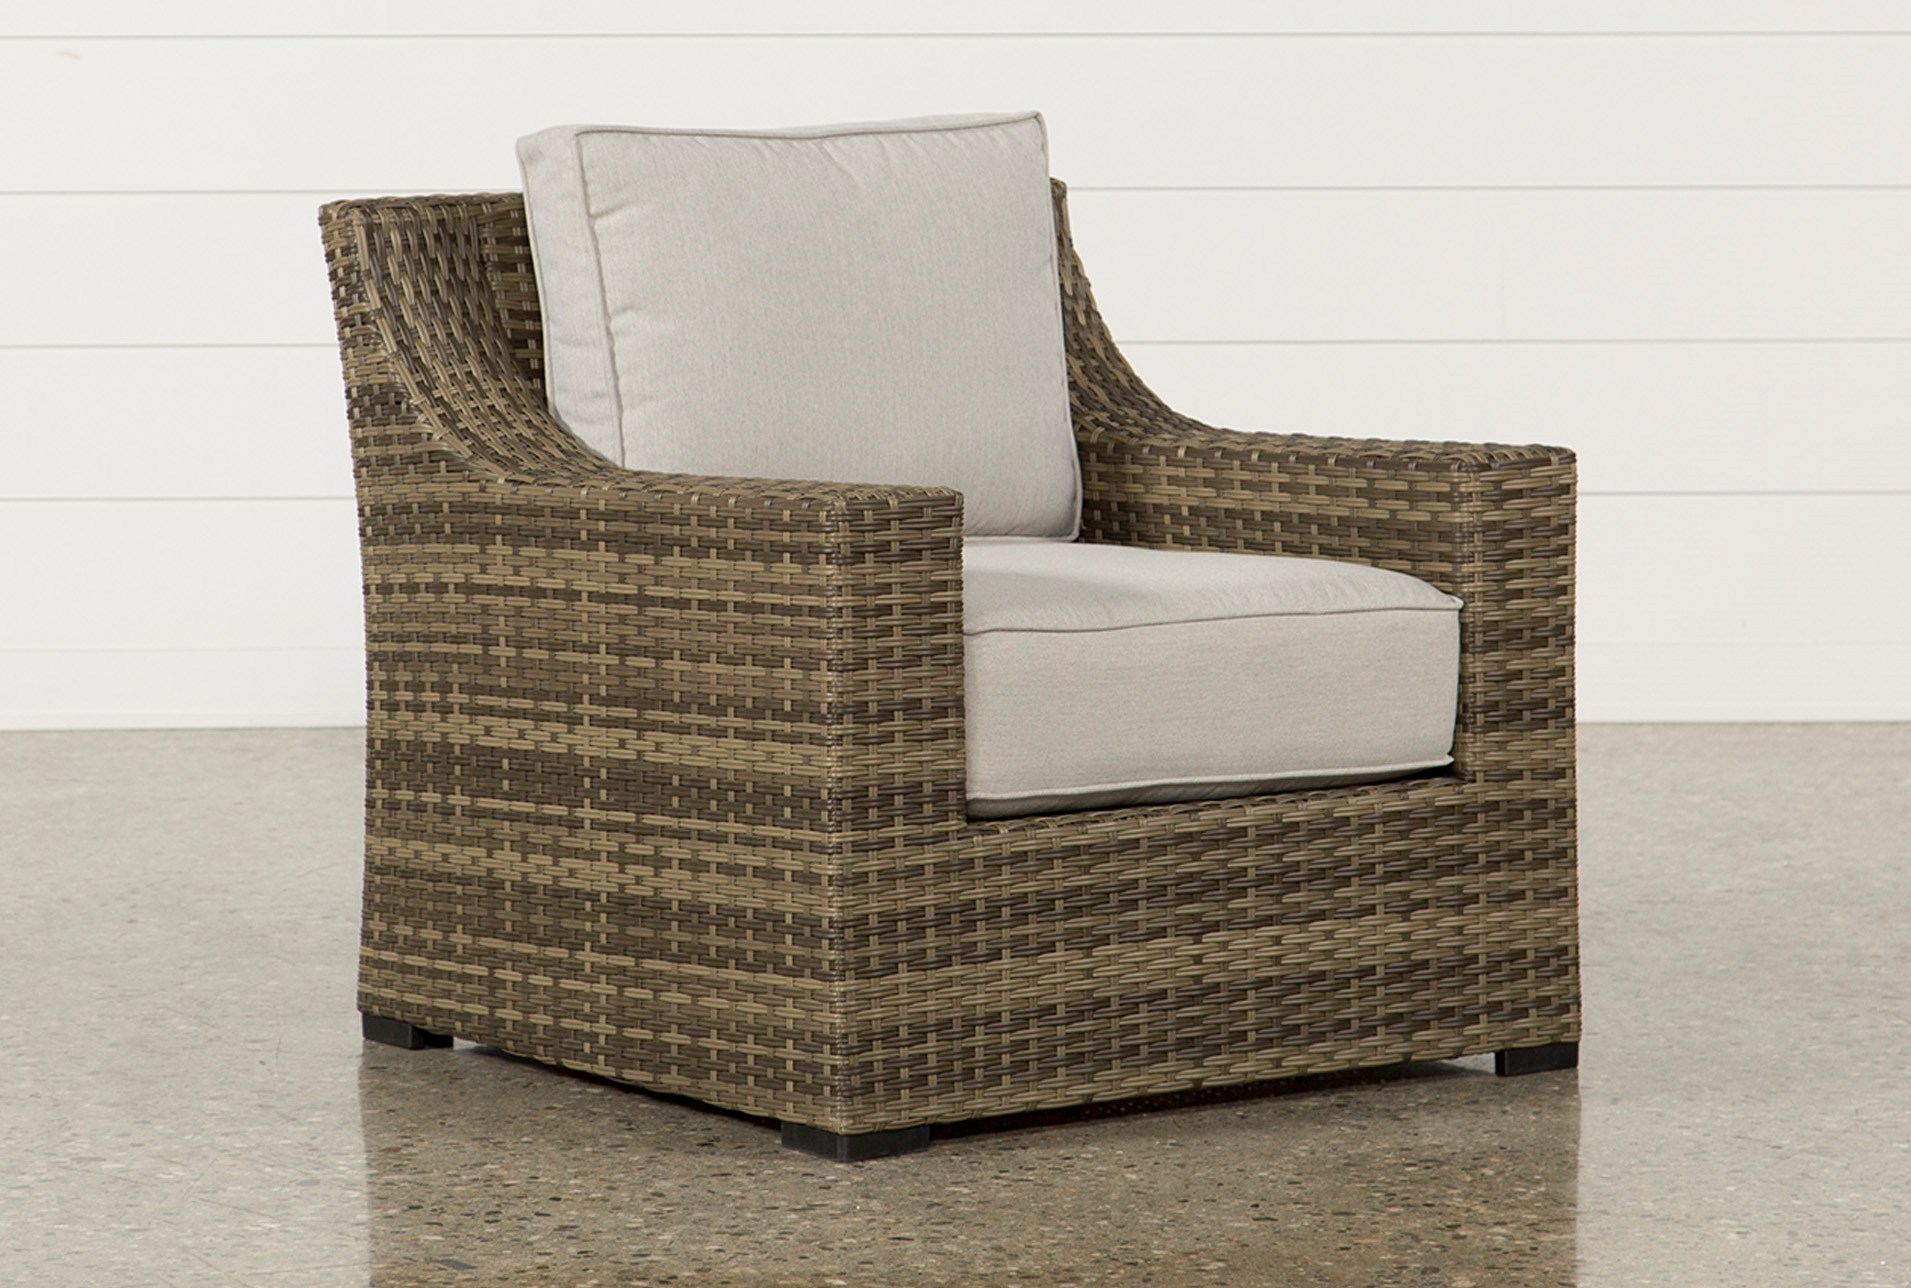 Outdoor aventura lounge chair qty 1 has been successfully added to your cart